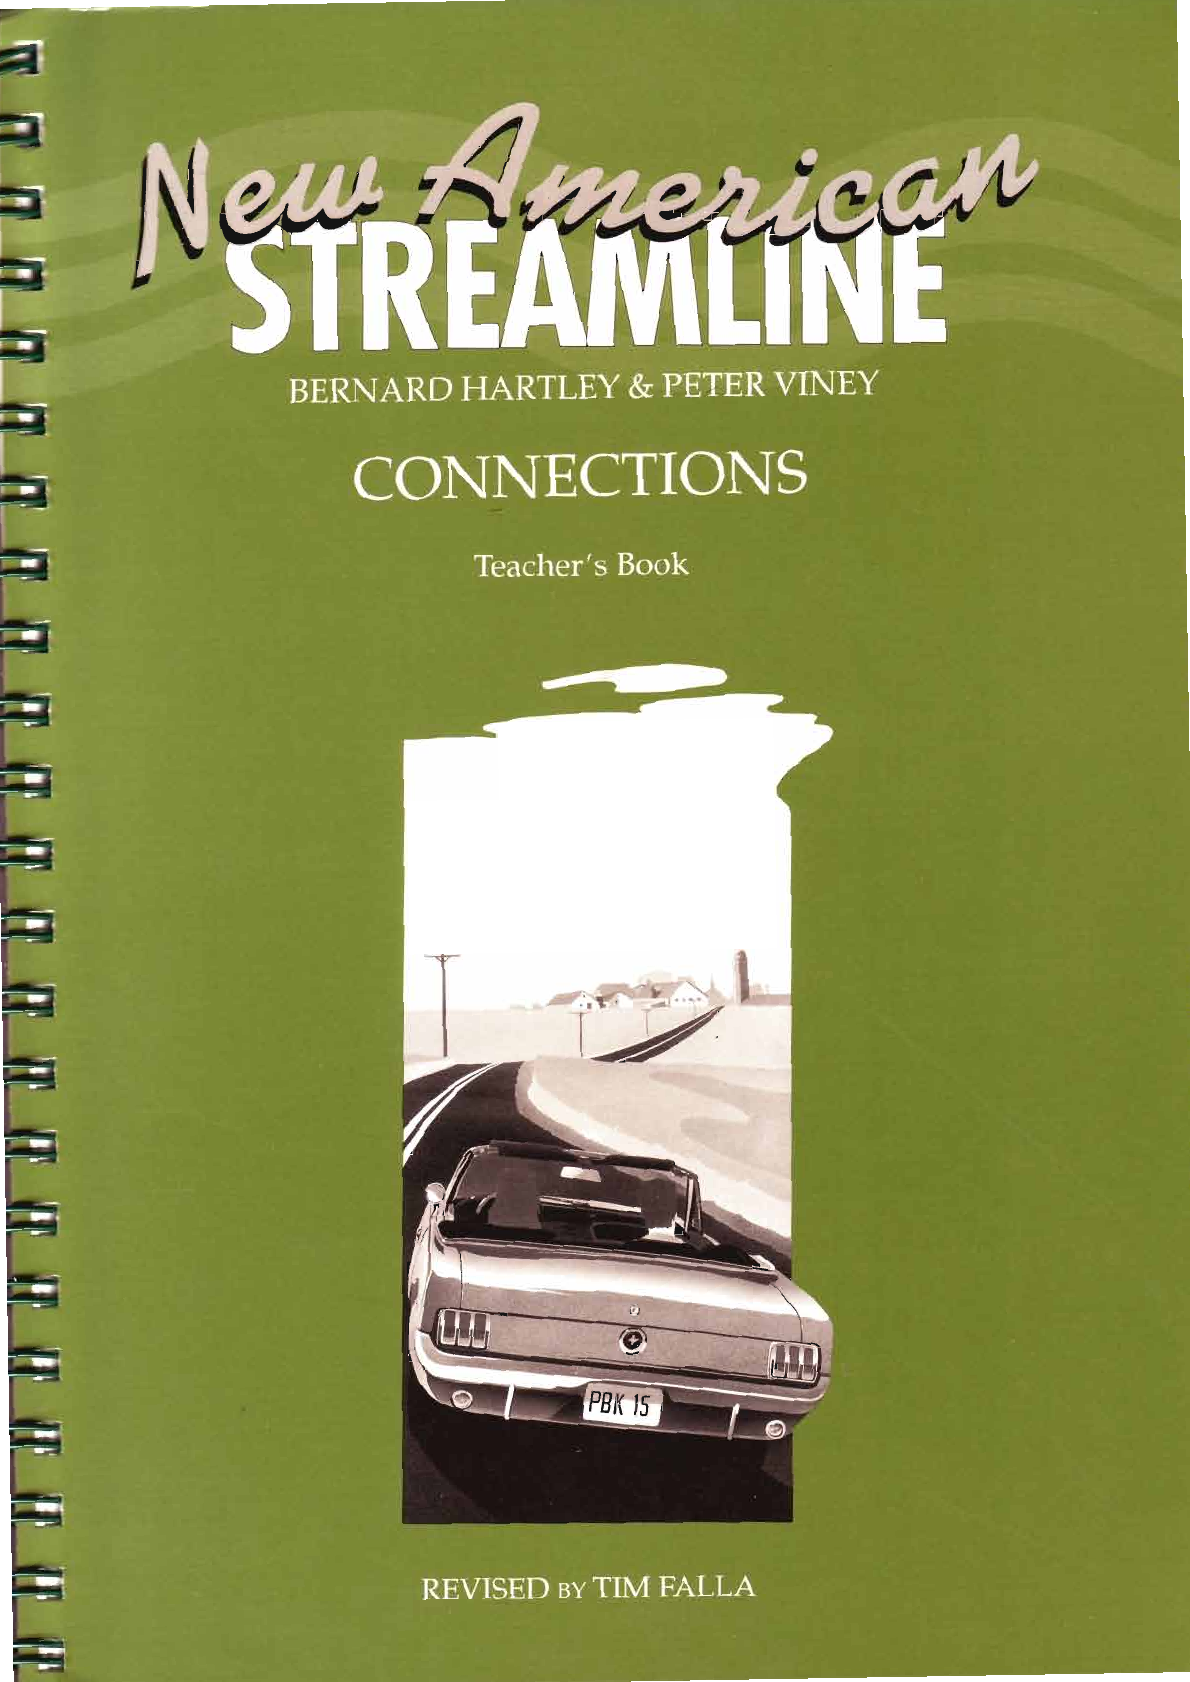 new american streamline connections teachers book pdf free download